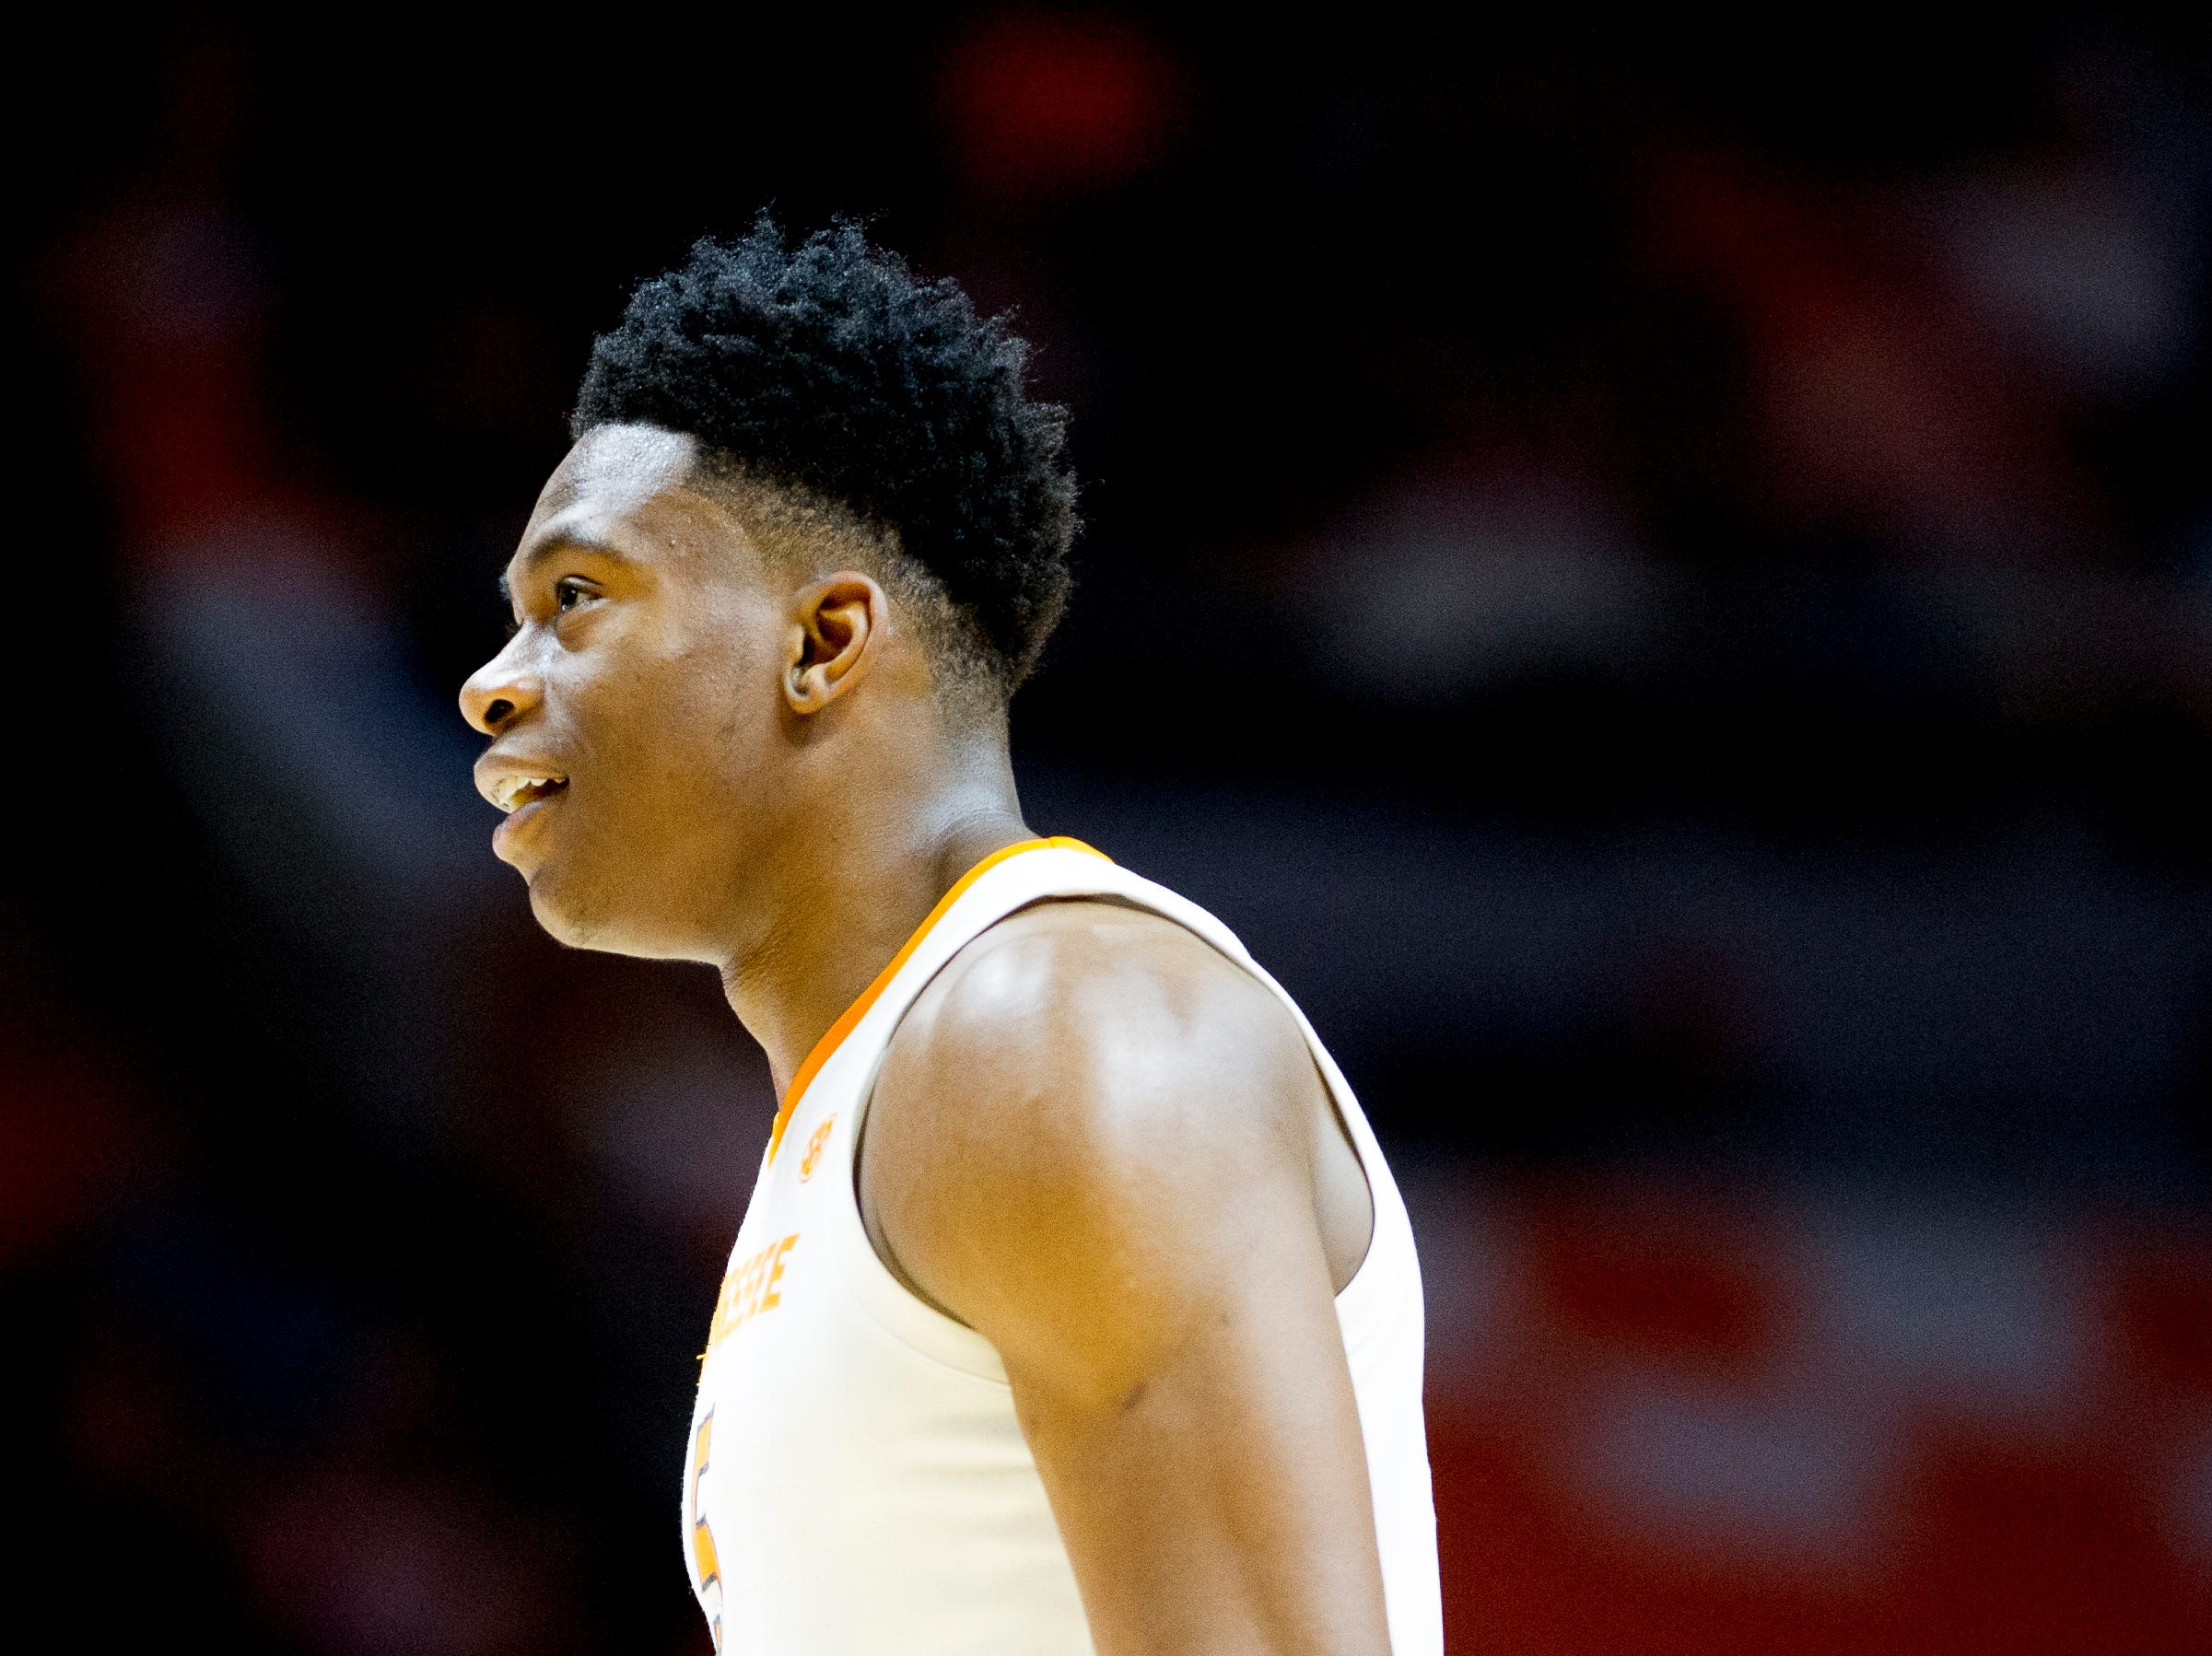 Tennessee guard Admiral Schofield (5) smiles after a play during a game between Tennessee and Tennessee Tech at Thompson-Boling Arena in Knoxville, Tennessee on Saturday, December 29, 2018.